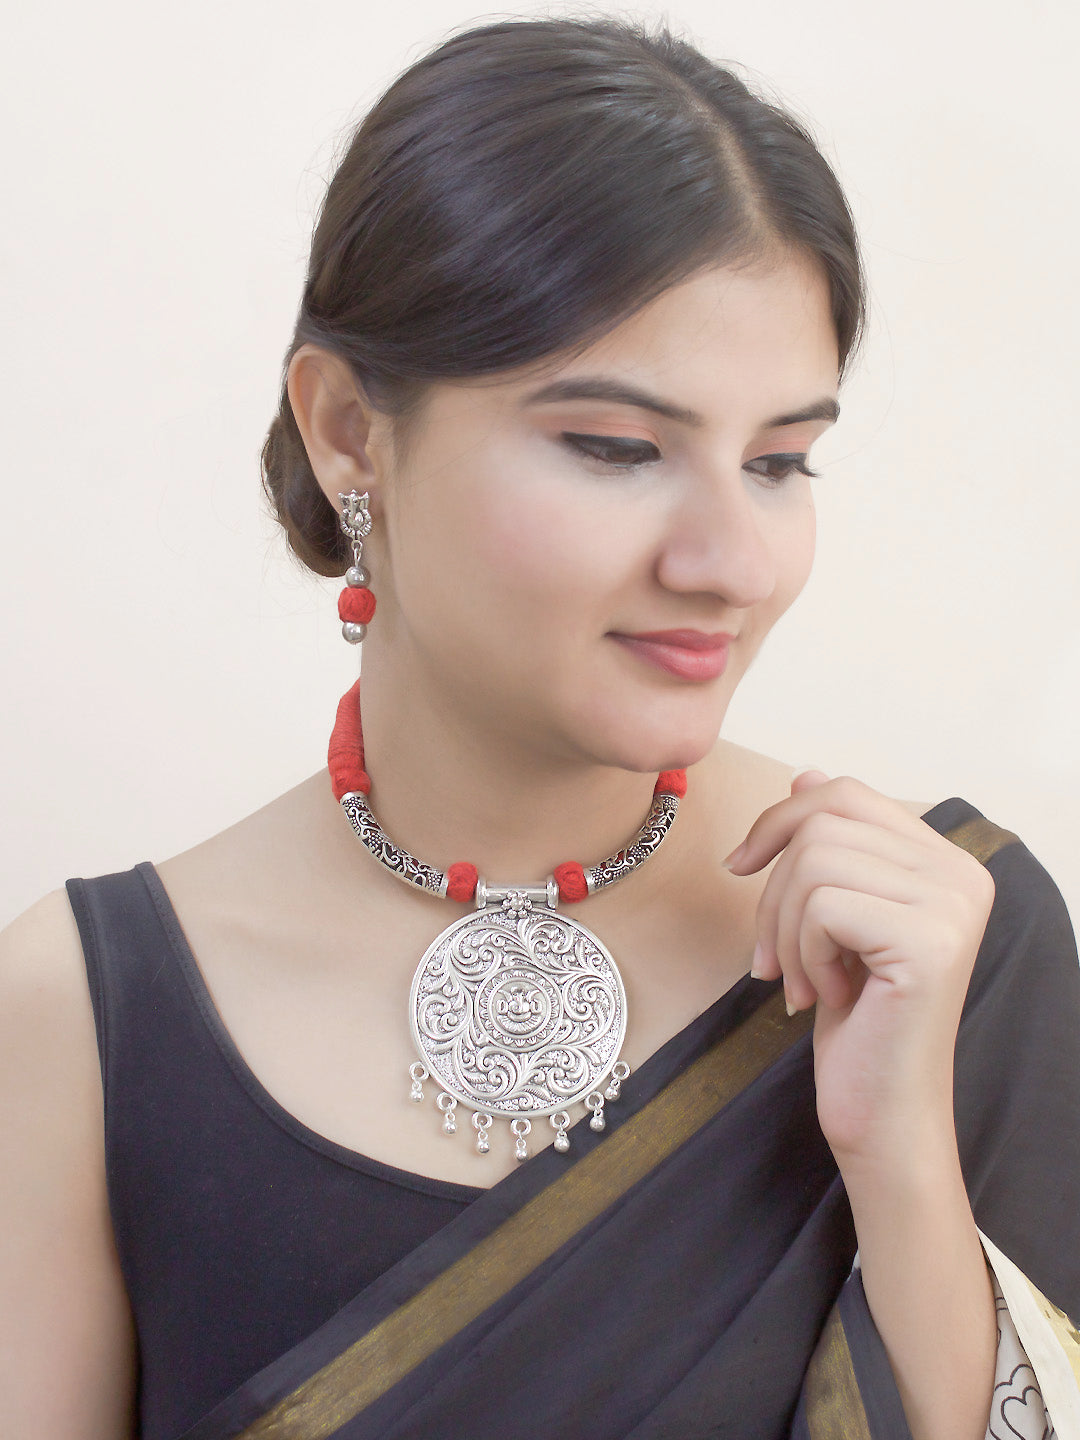 Oxidised Silver Temple Jewellery Big Ganesha Pendant Necklace Set By Nishna Designs